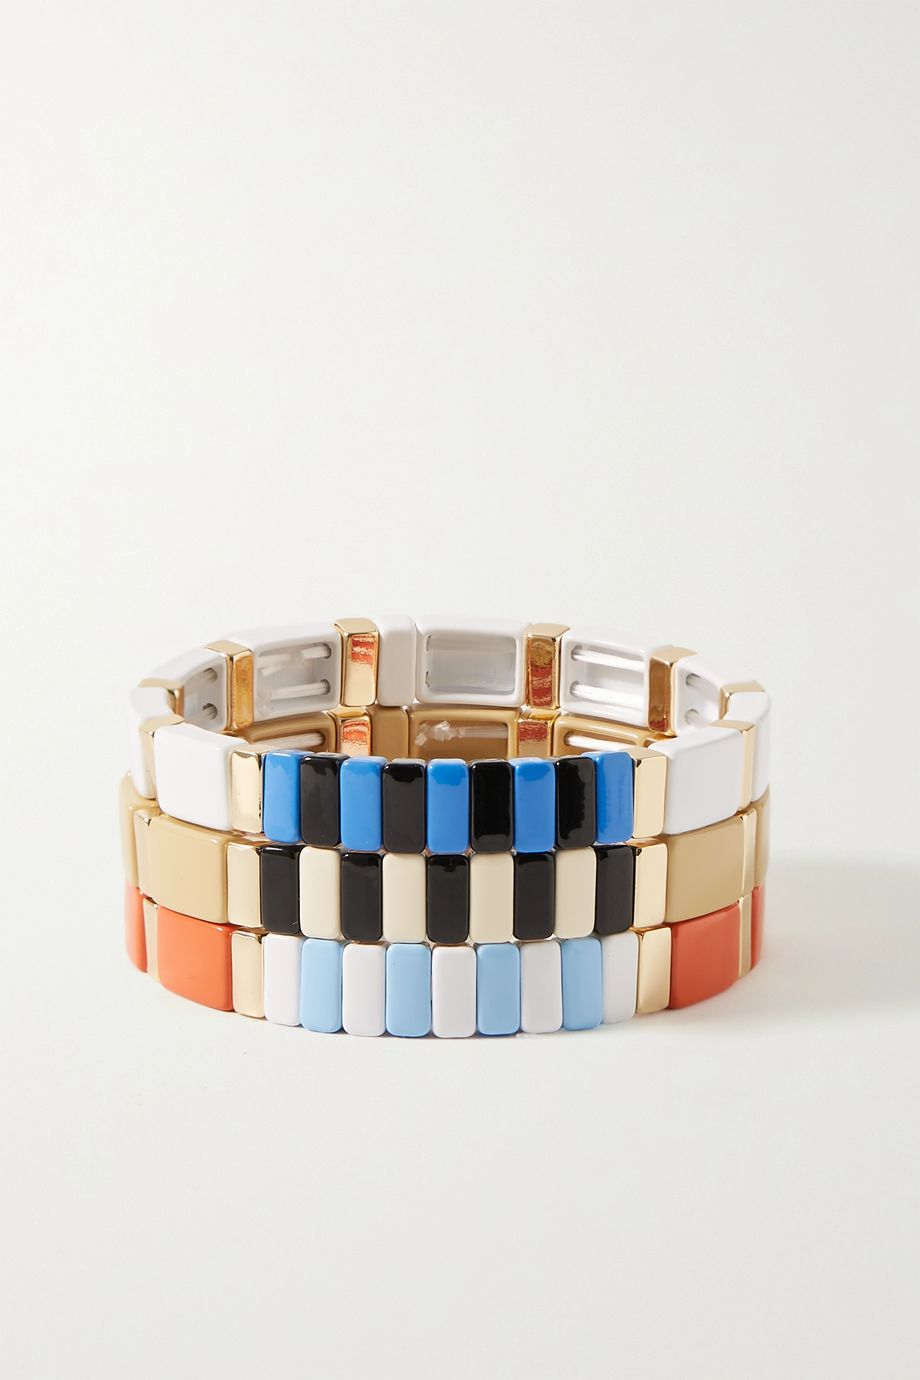 Roxanne Assoulin Classic Sport set of three enamel and gold-tone bracelets